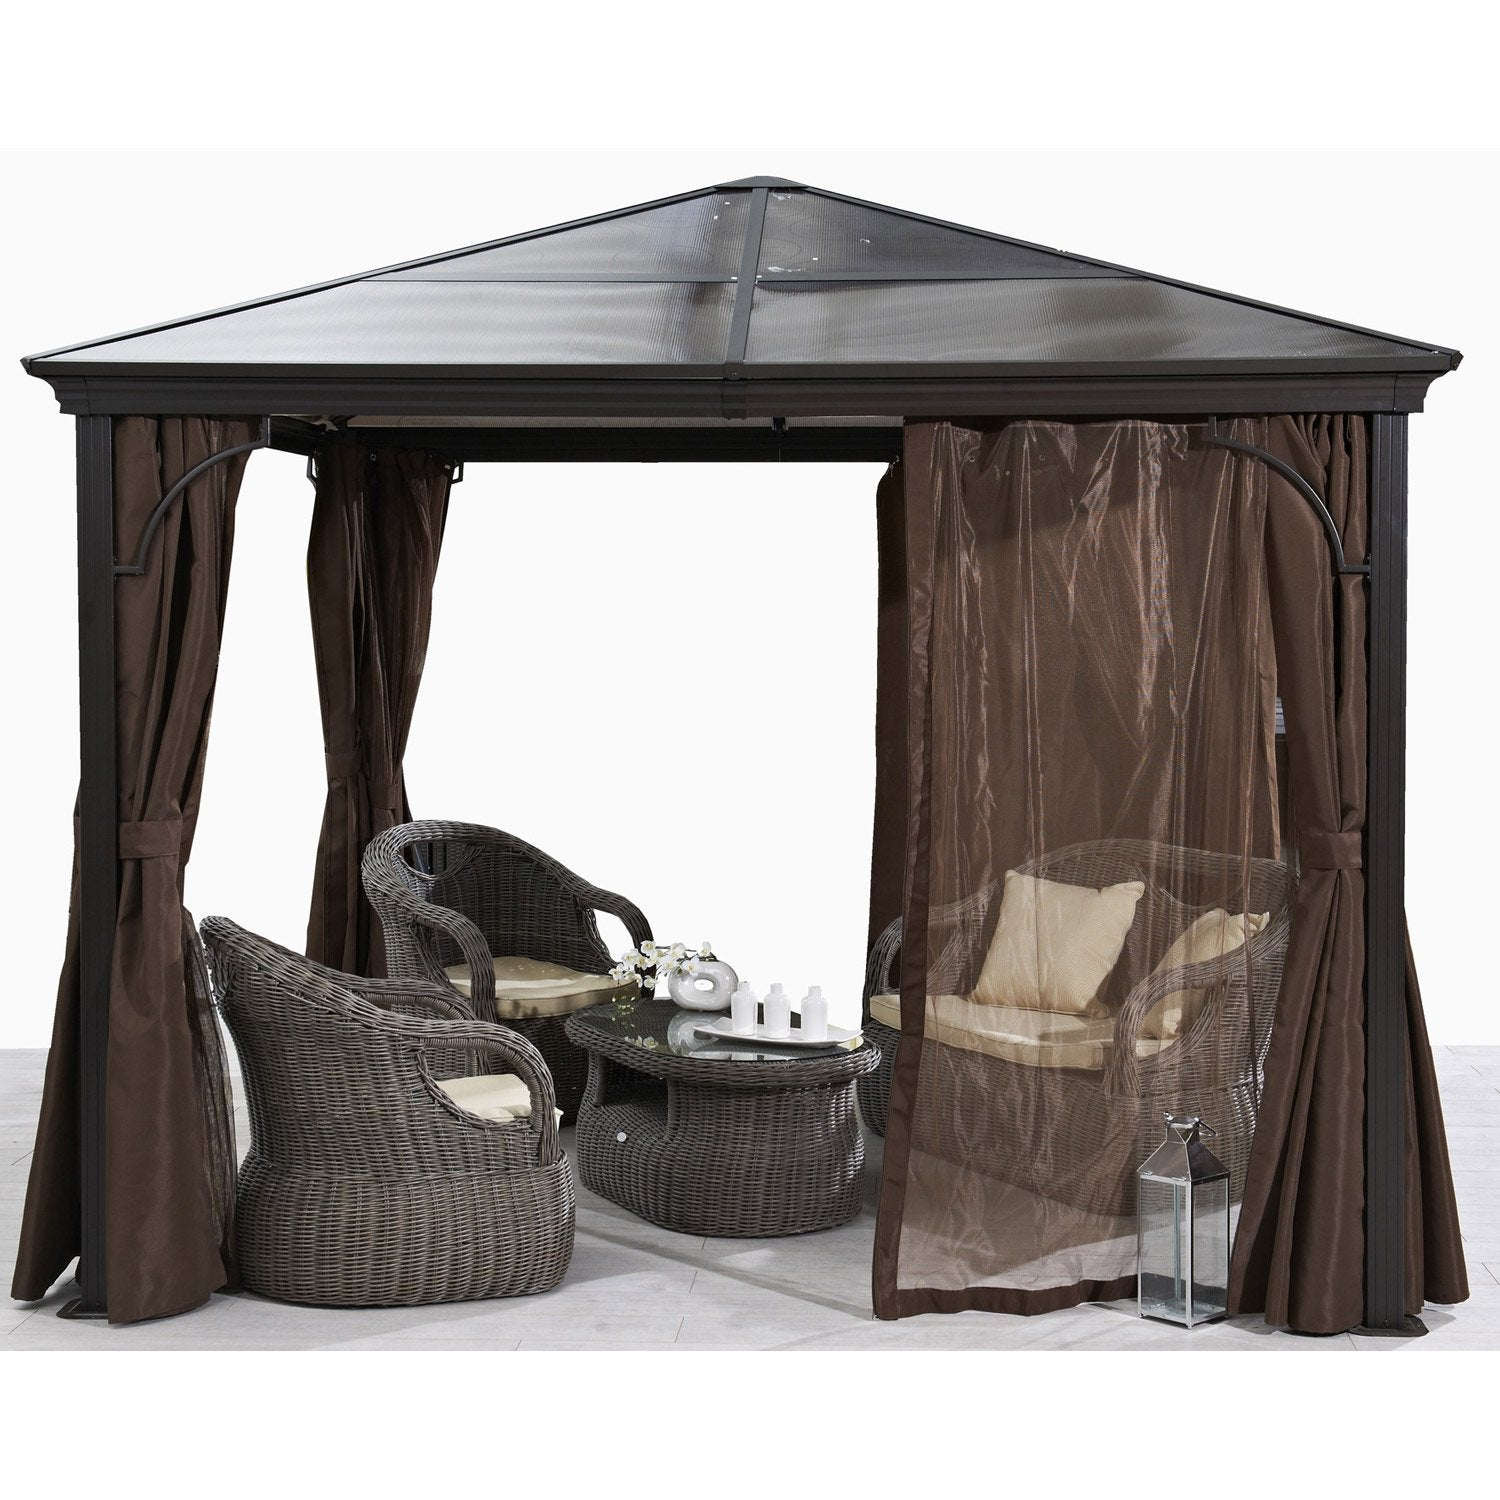 pergola autoportante verona acier et aluminium marron 9 m leroy merlin. Black Bedroom Furniture Sets. Home Design Ideas